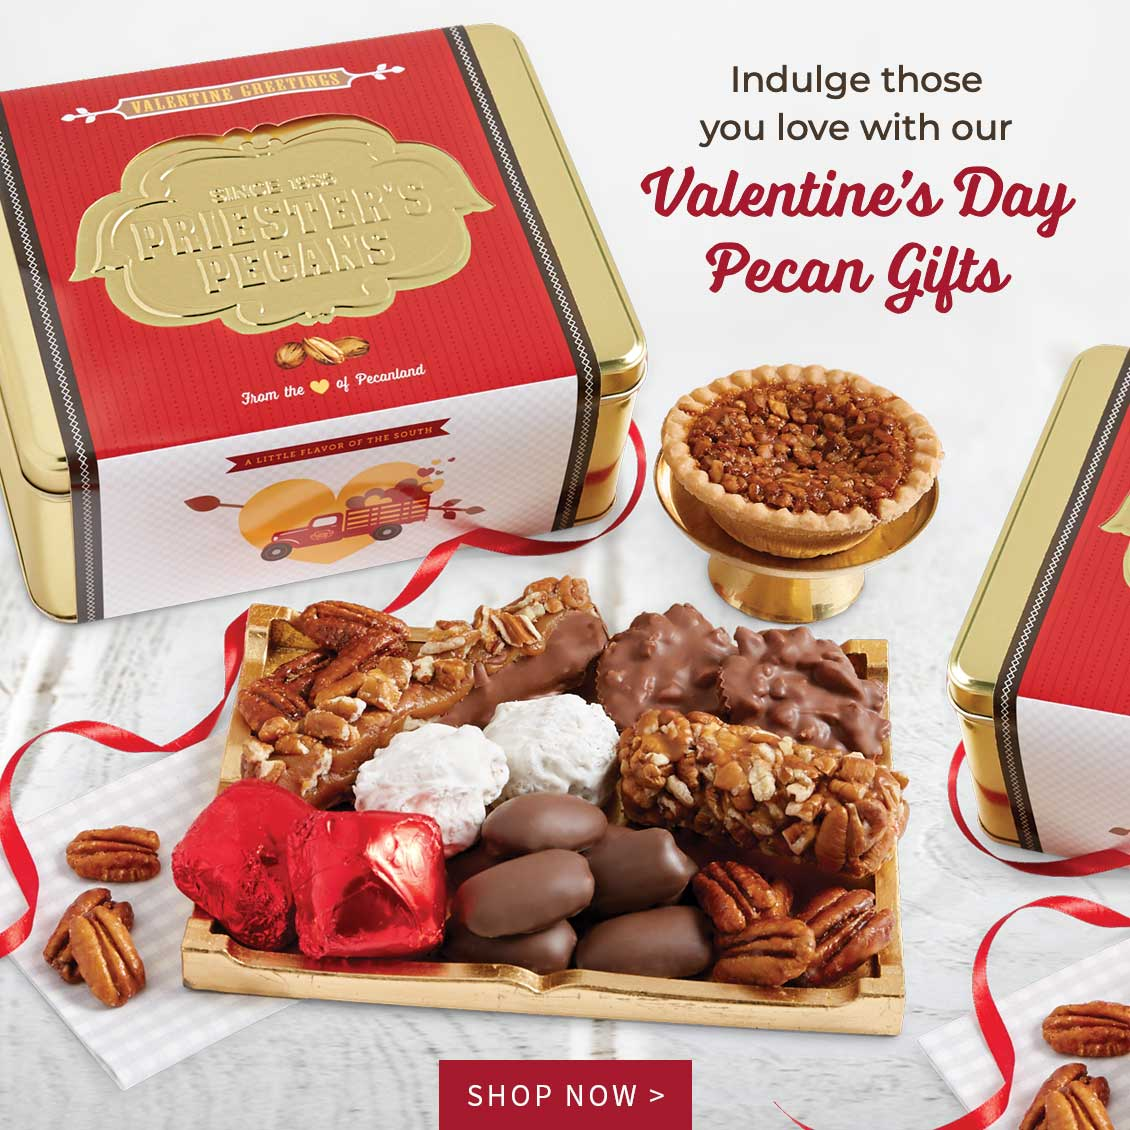 Indulge those you love with our Valentine's Day Pecan Gifts